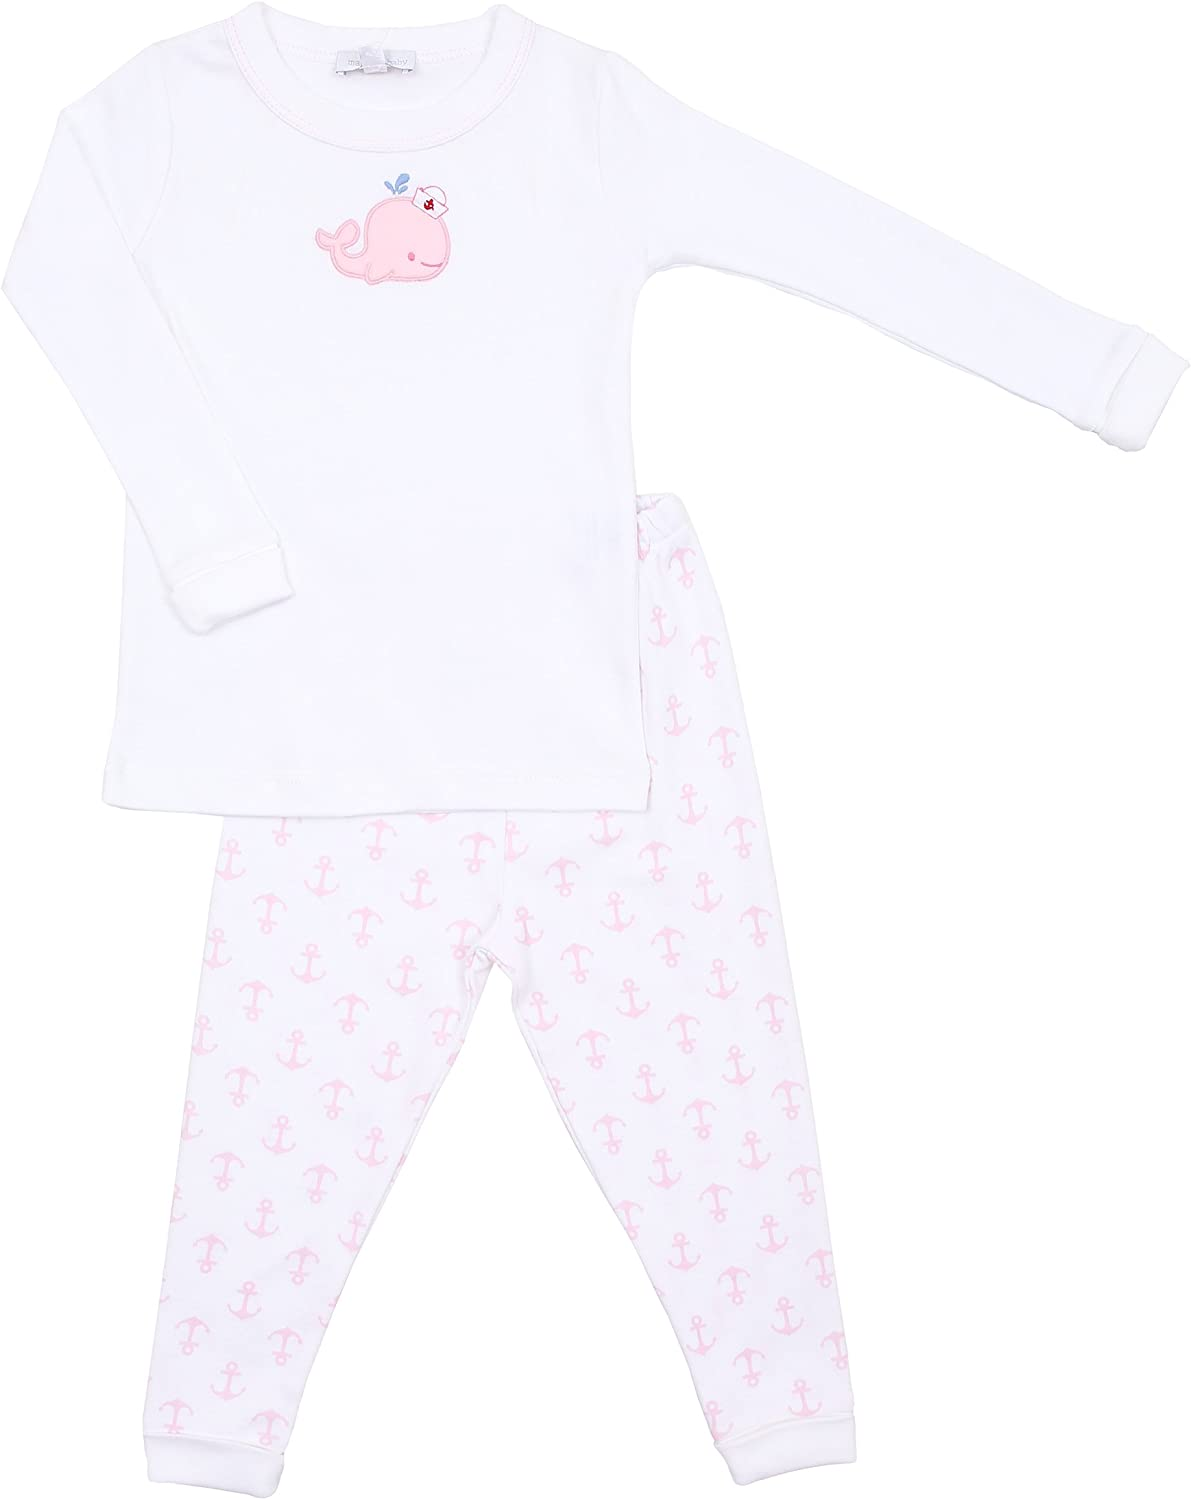 Magnolia Baby Baby Girl Little Whales Applique Long Pajamas Pink